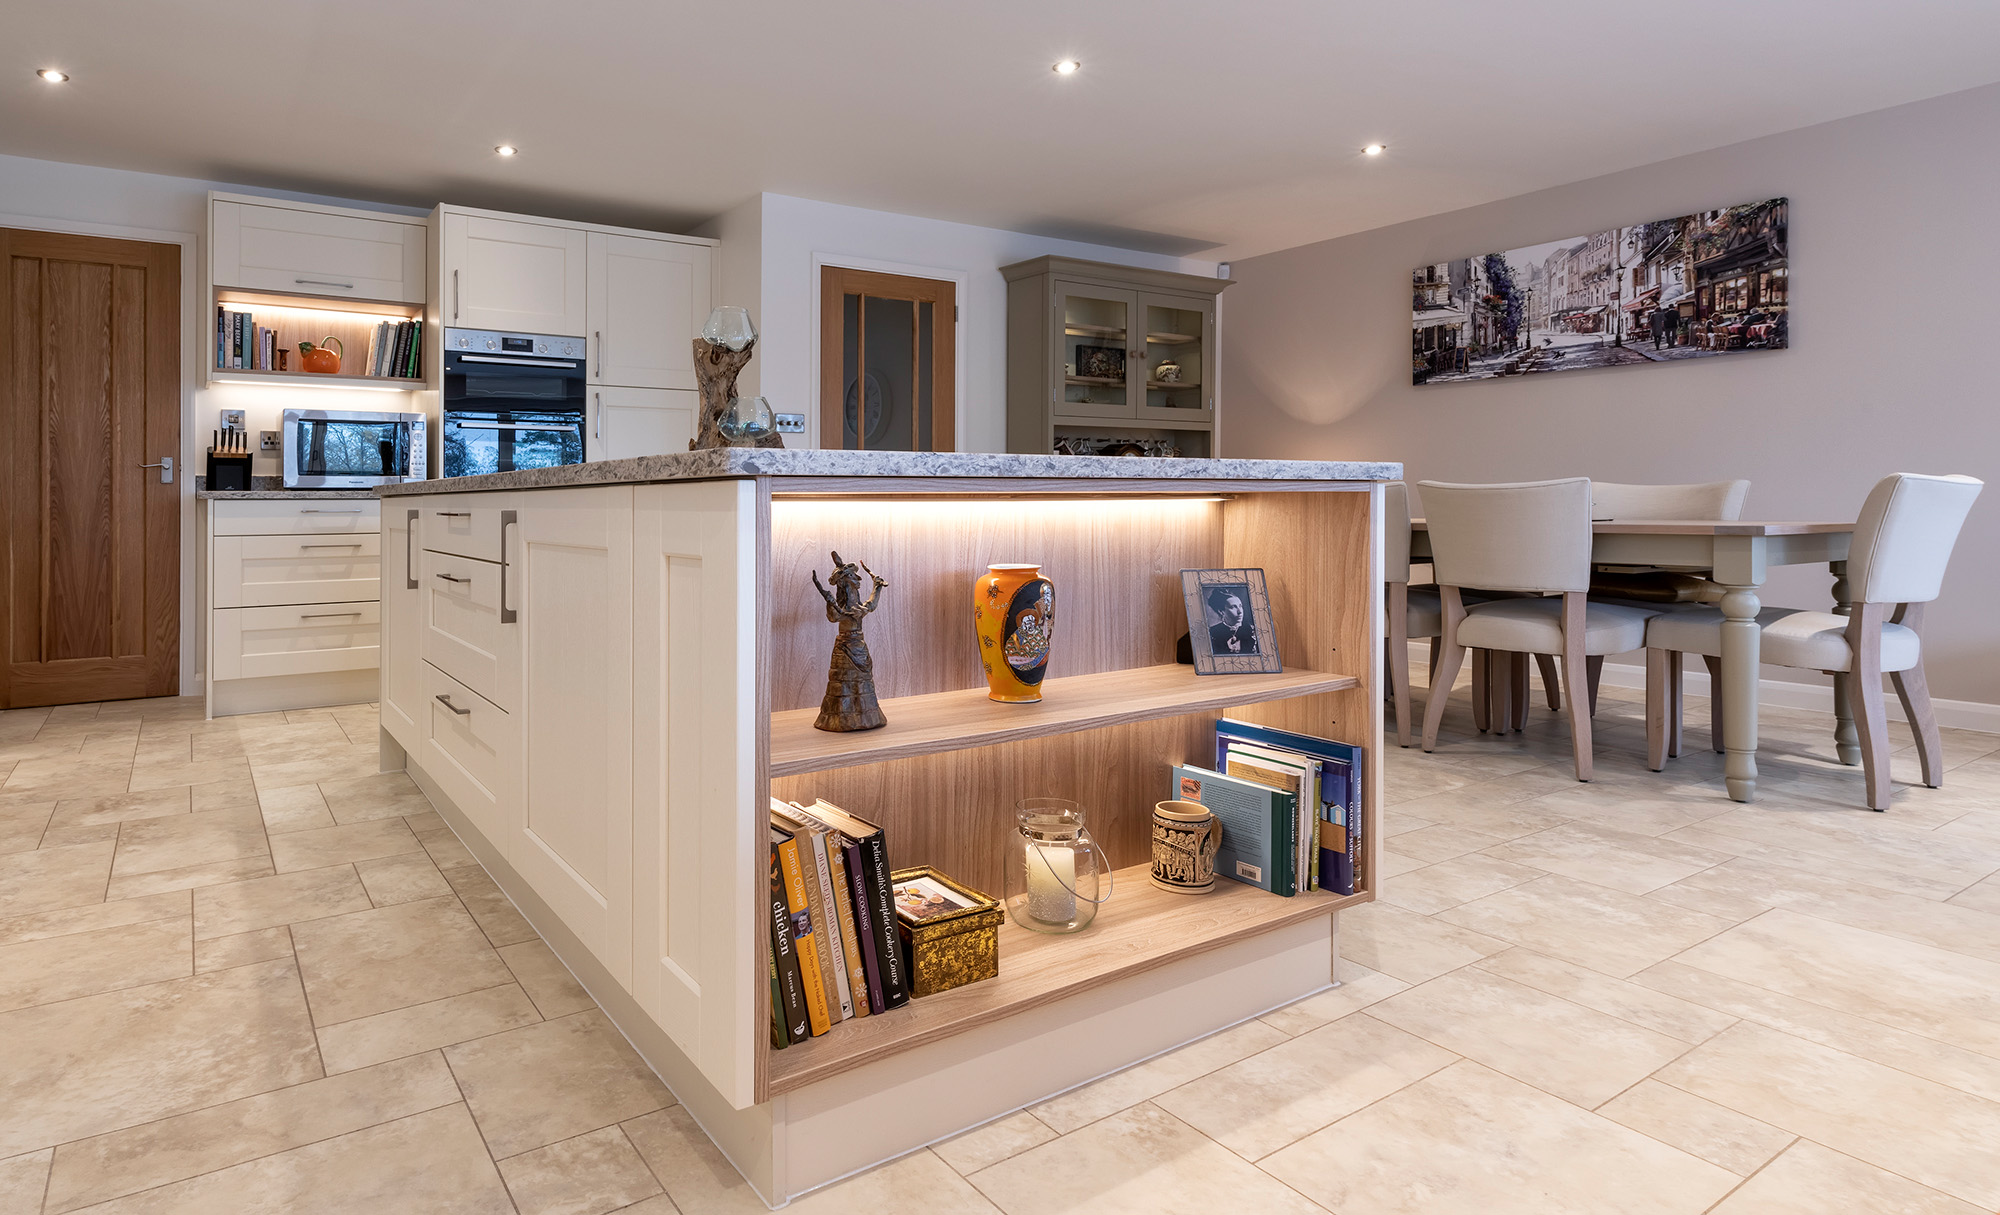 Kensington Painted Ivory Kitchen by Portishead Kitchens Shelving